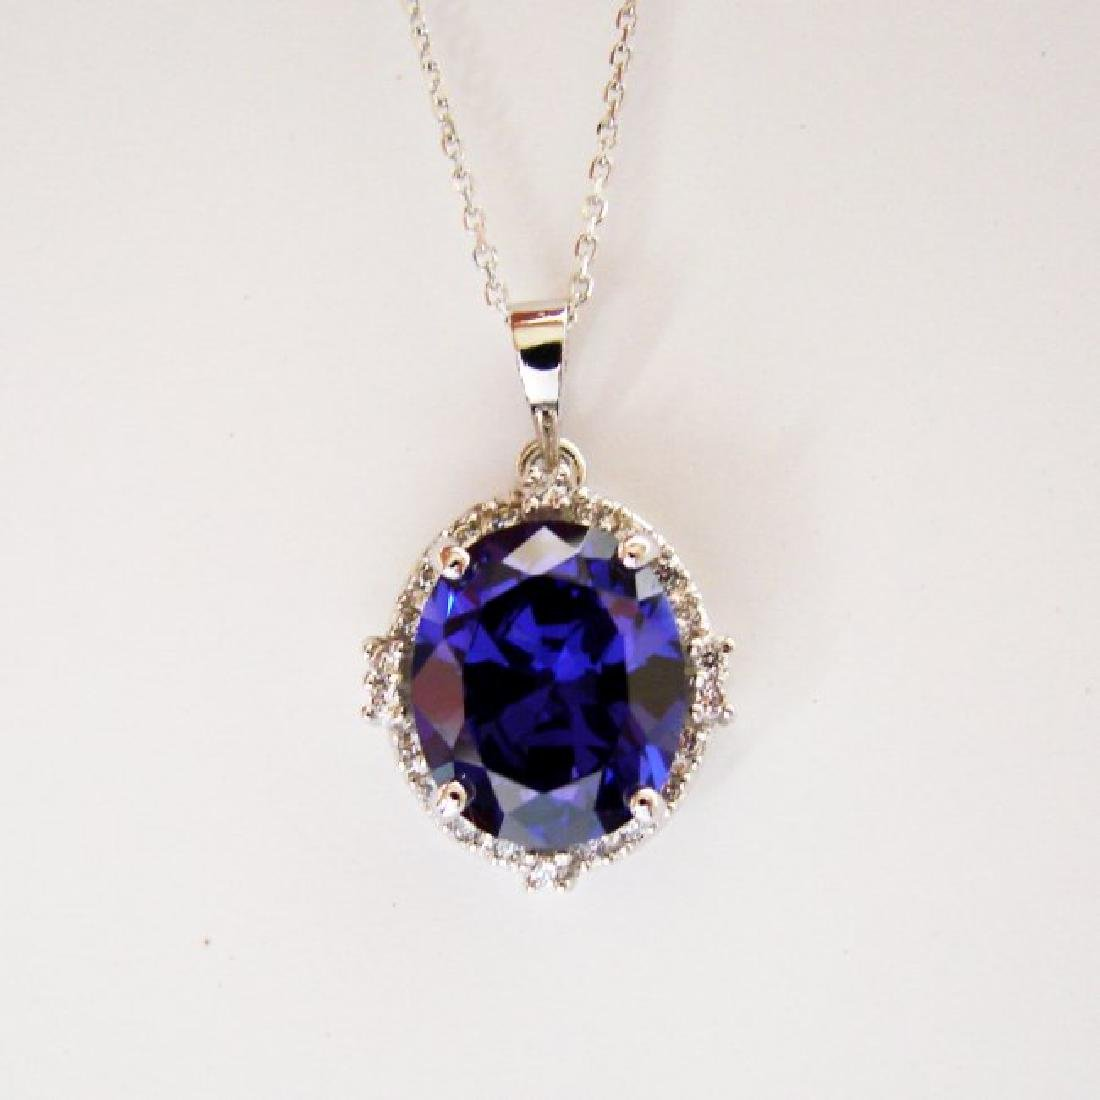 Creation Diamond/Tanzanite Pendant 7.72Ct 18k W/g